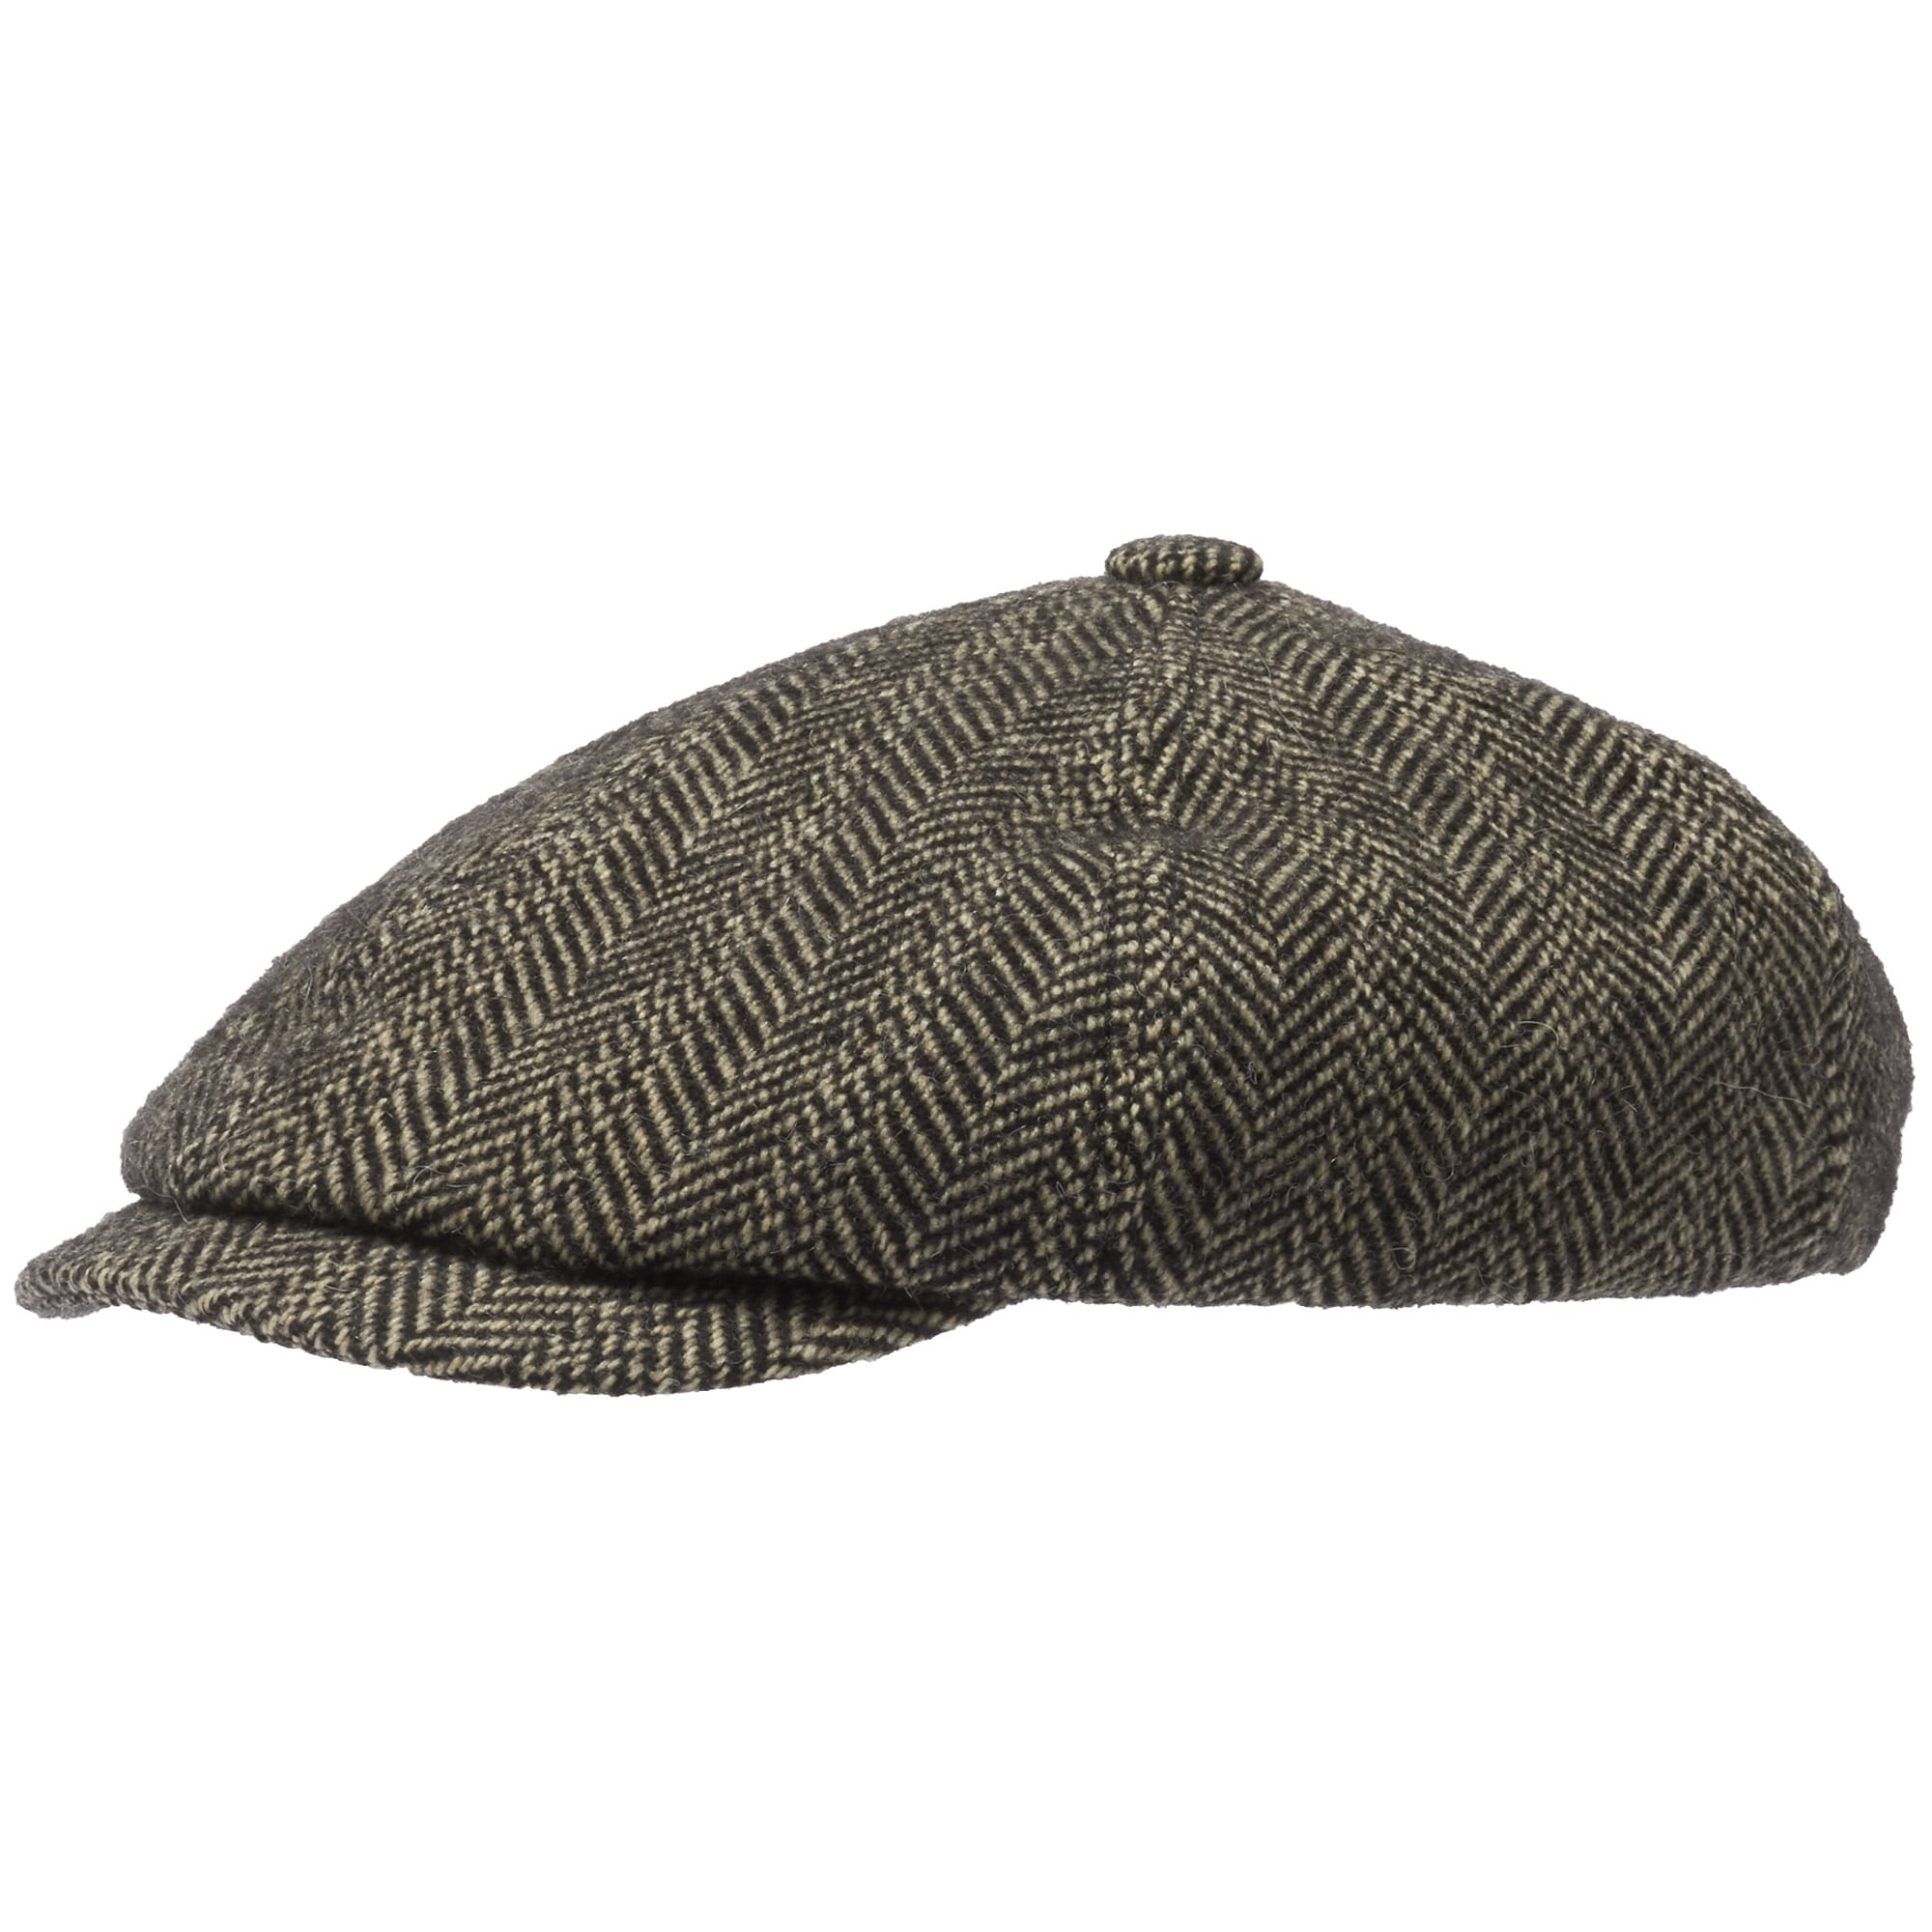 Virgin Wool 6-Panel Flat Cap- Herringbone 5f6997c670e